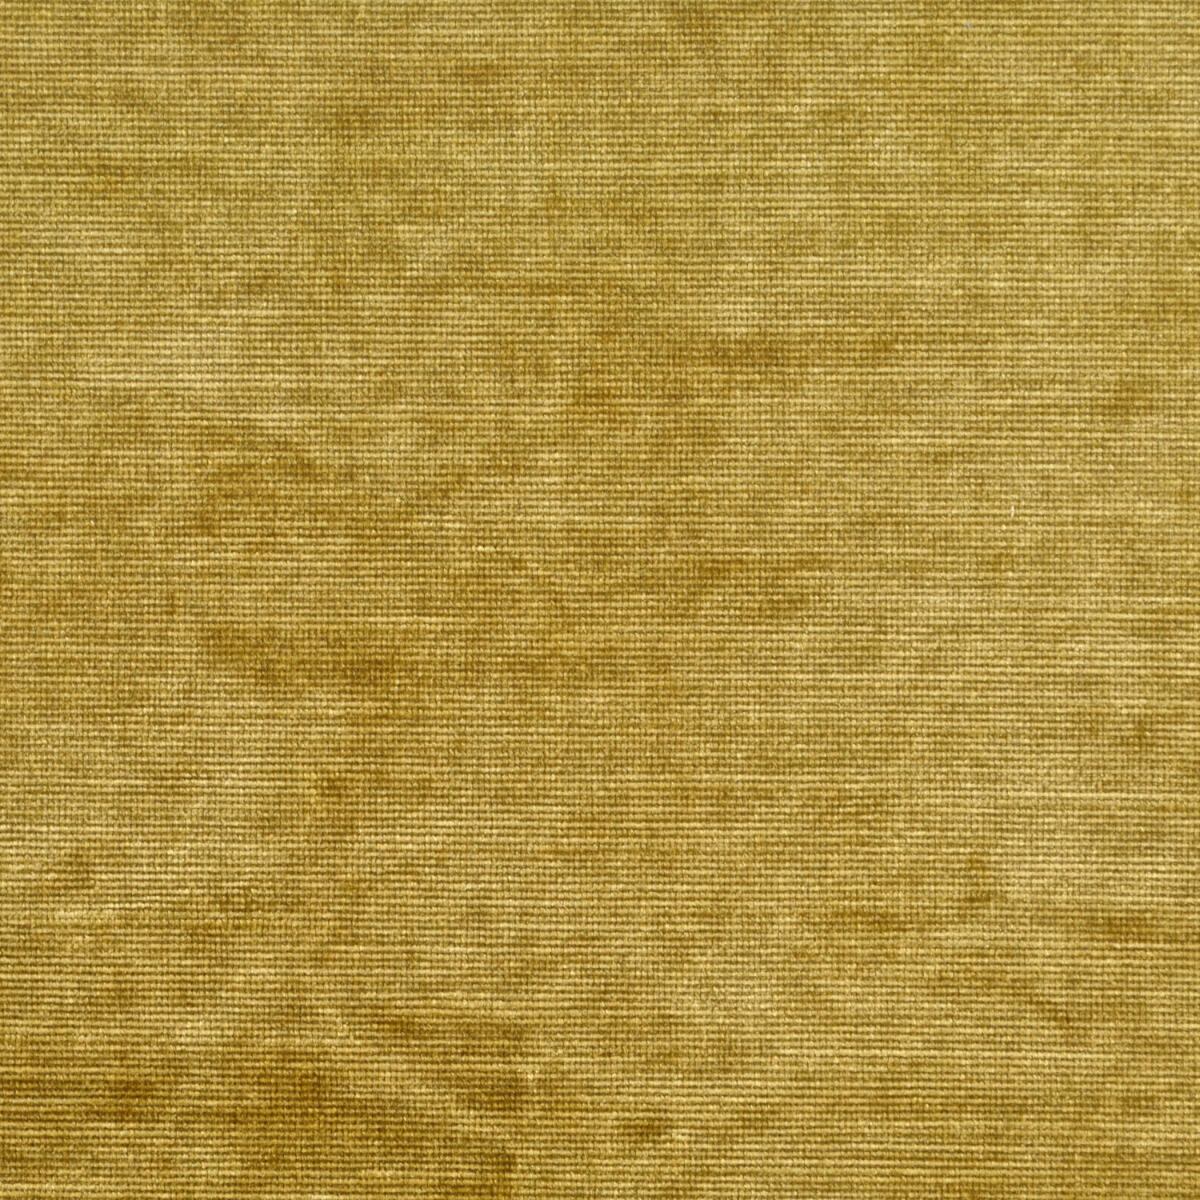 Aida Velvet Antique Gold Fabric Clarence House